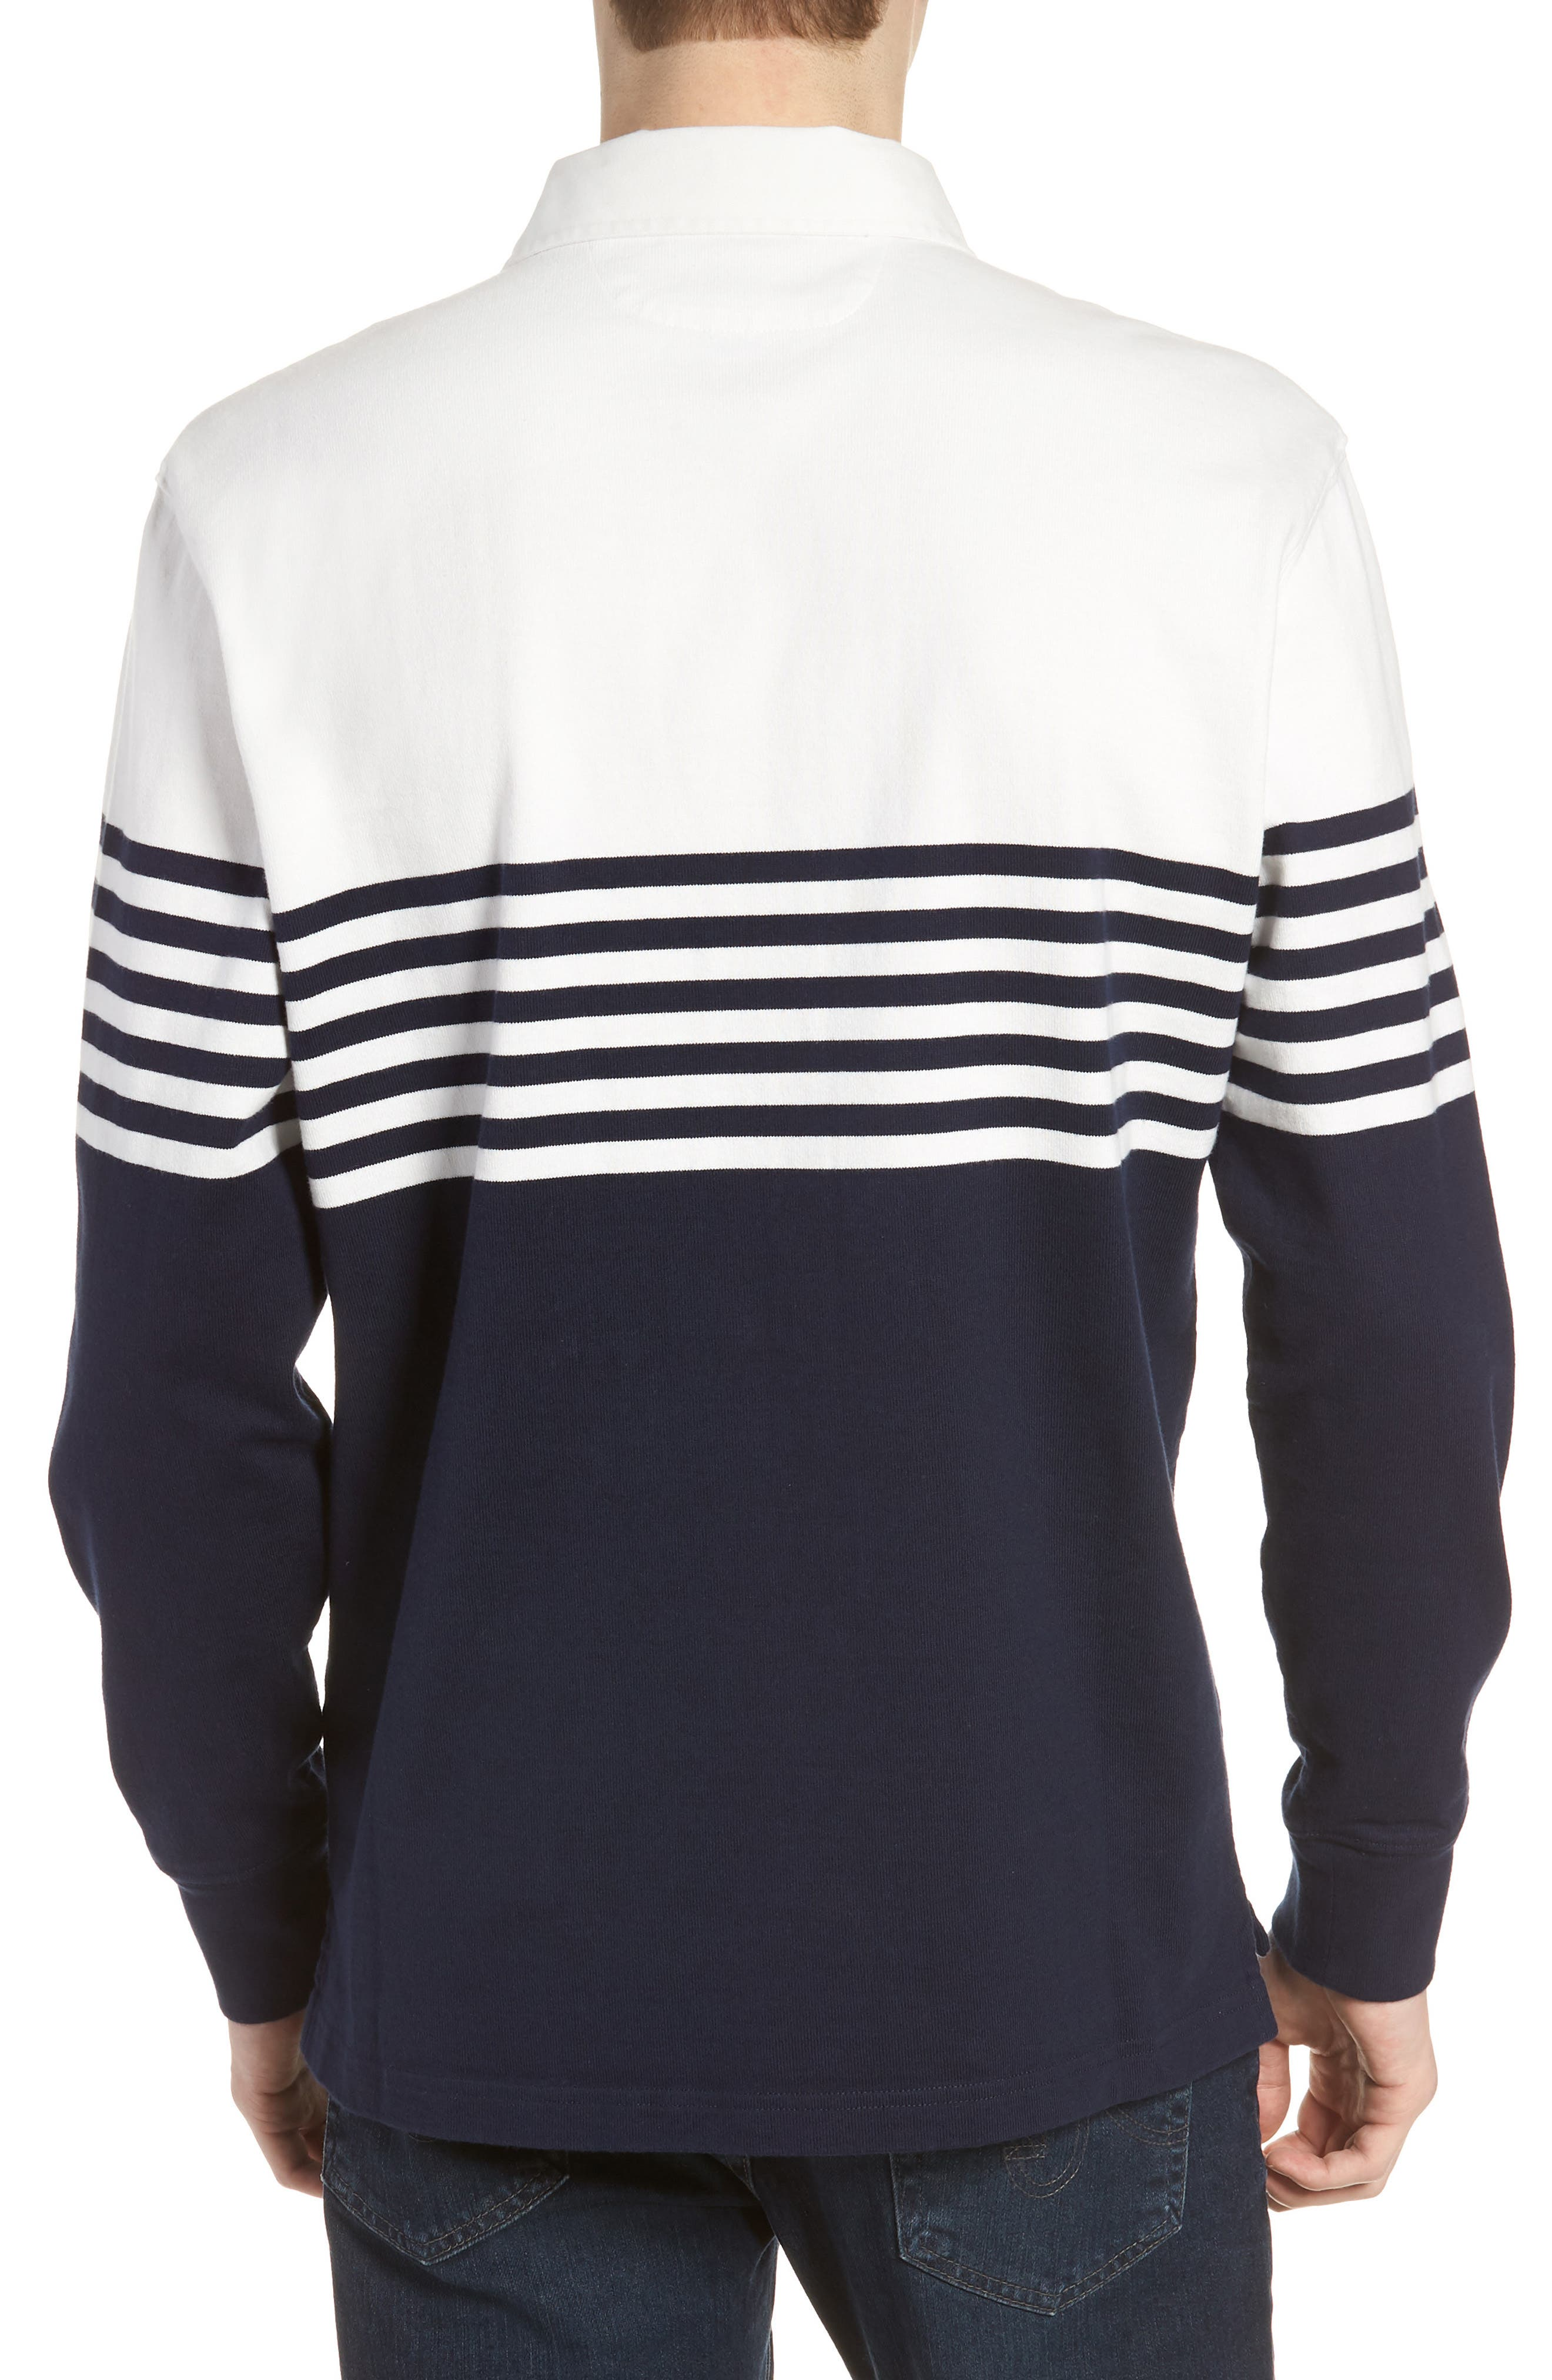 1984 Colorblock Stripe Rugby Shirt,                             Alternate thumbnail 2, color,                             400